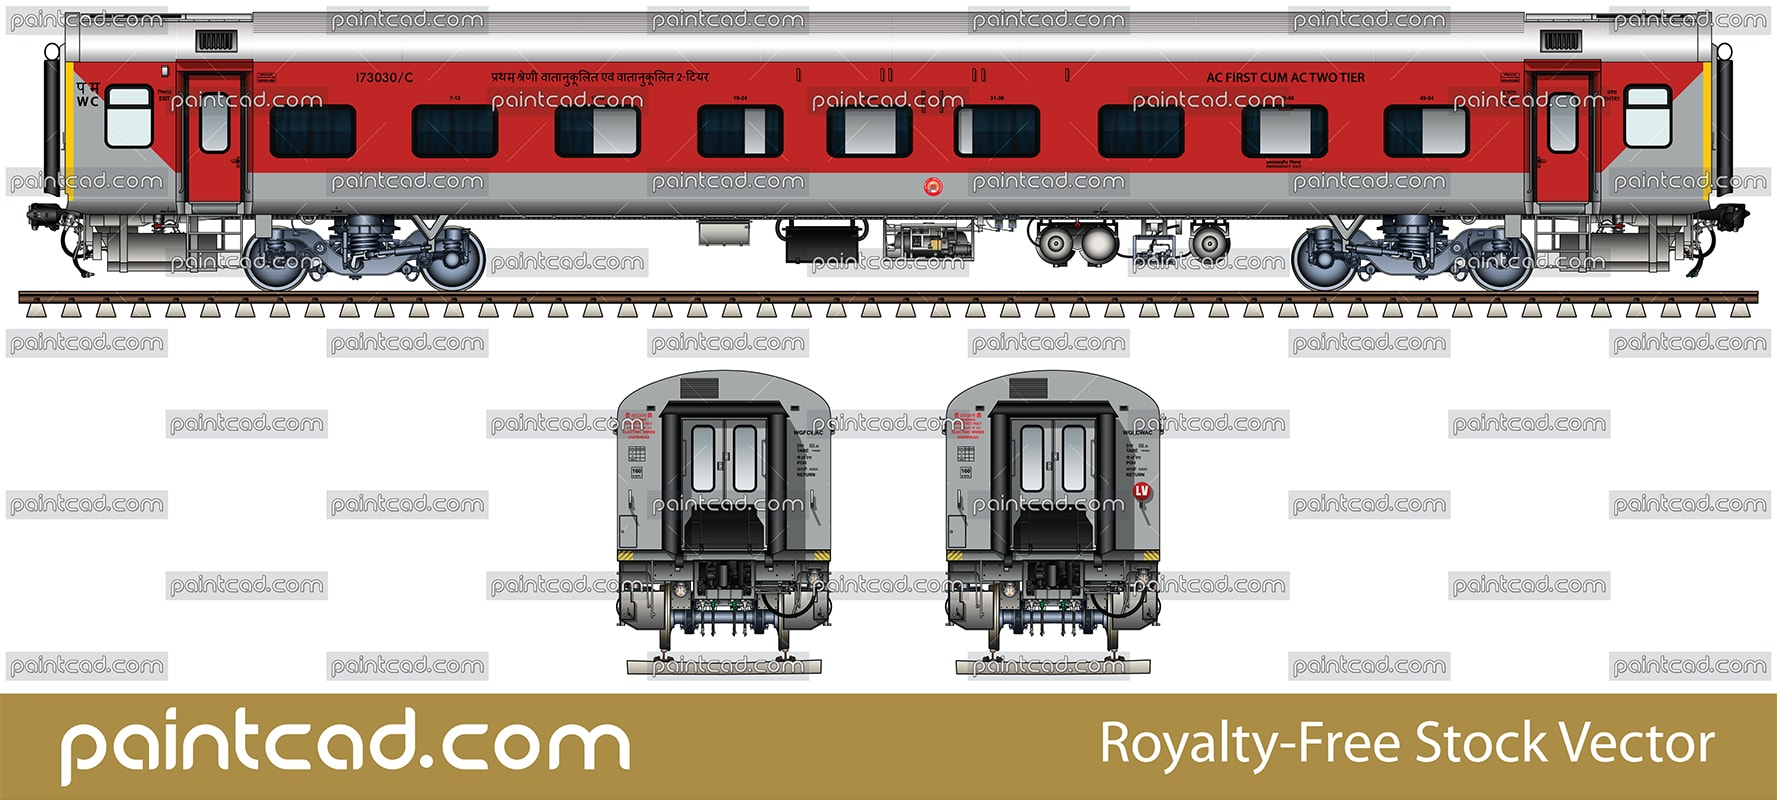 Indian LHB passenger car - mixed AC first cum AC two tier - vector illustration